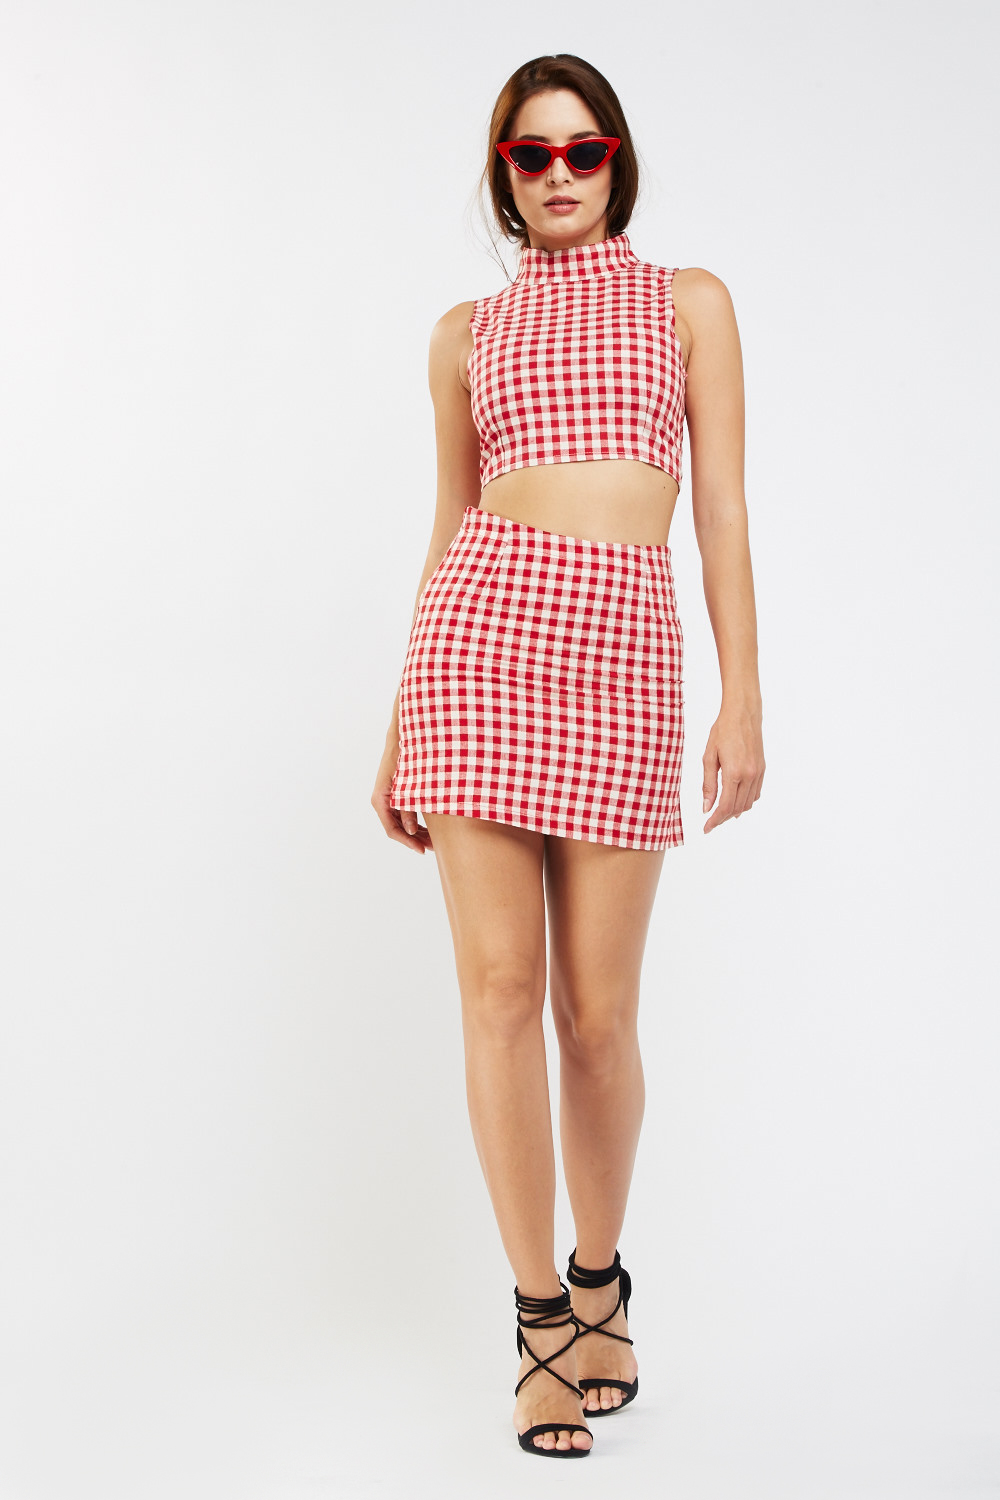 a3417f2789fea Turtle Neck Gingham Top And Skirt Set - Just £5